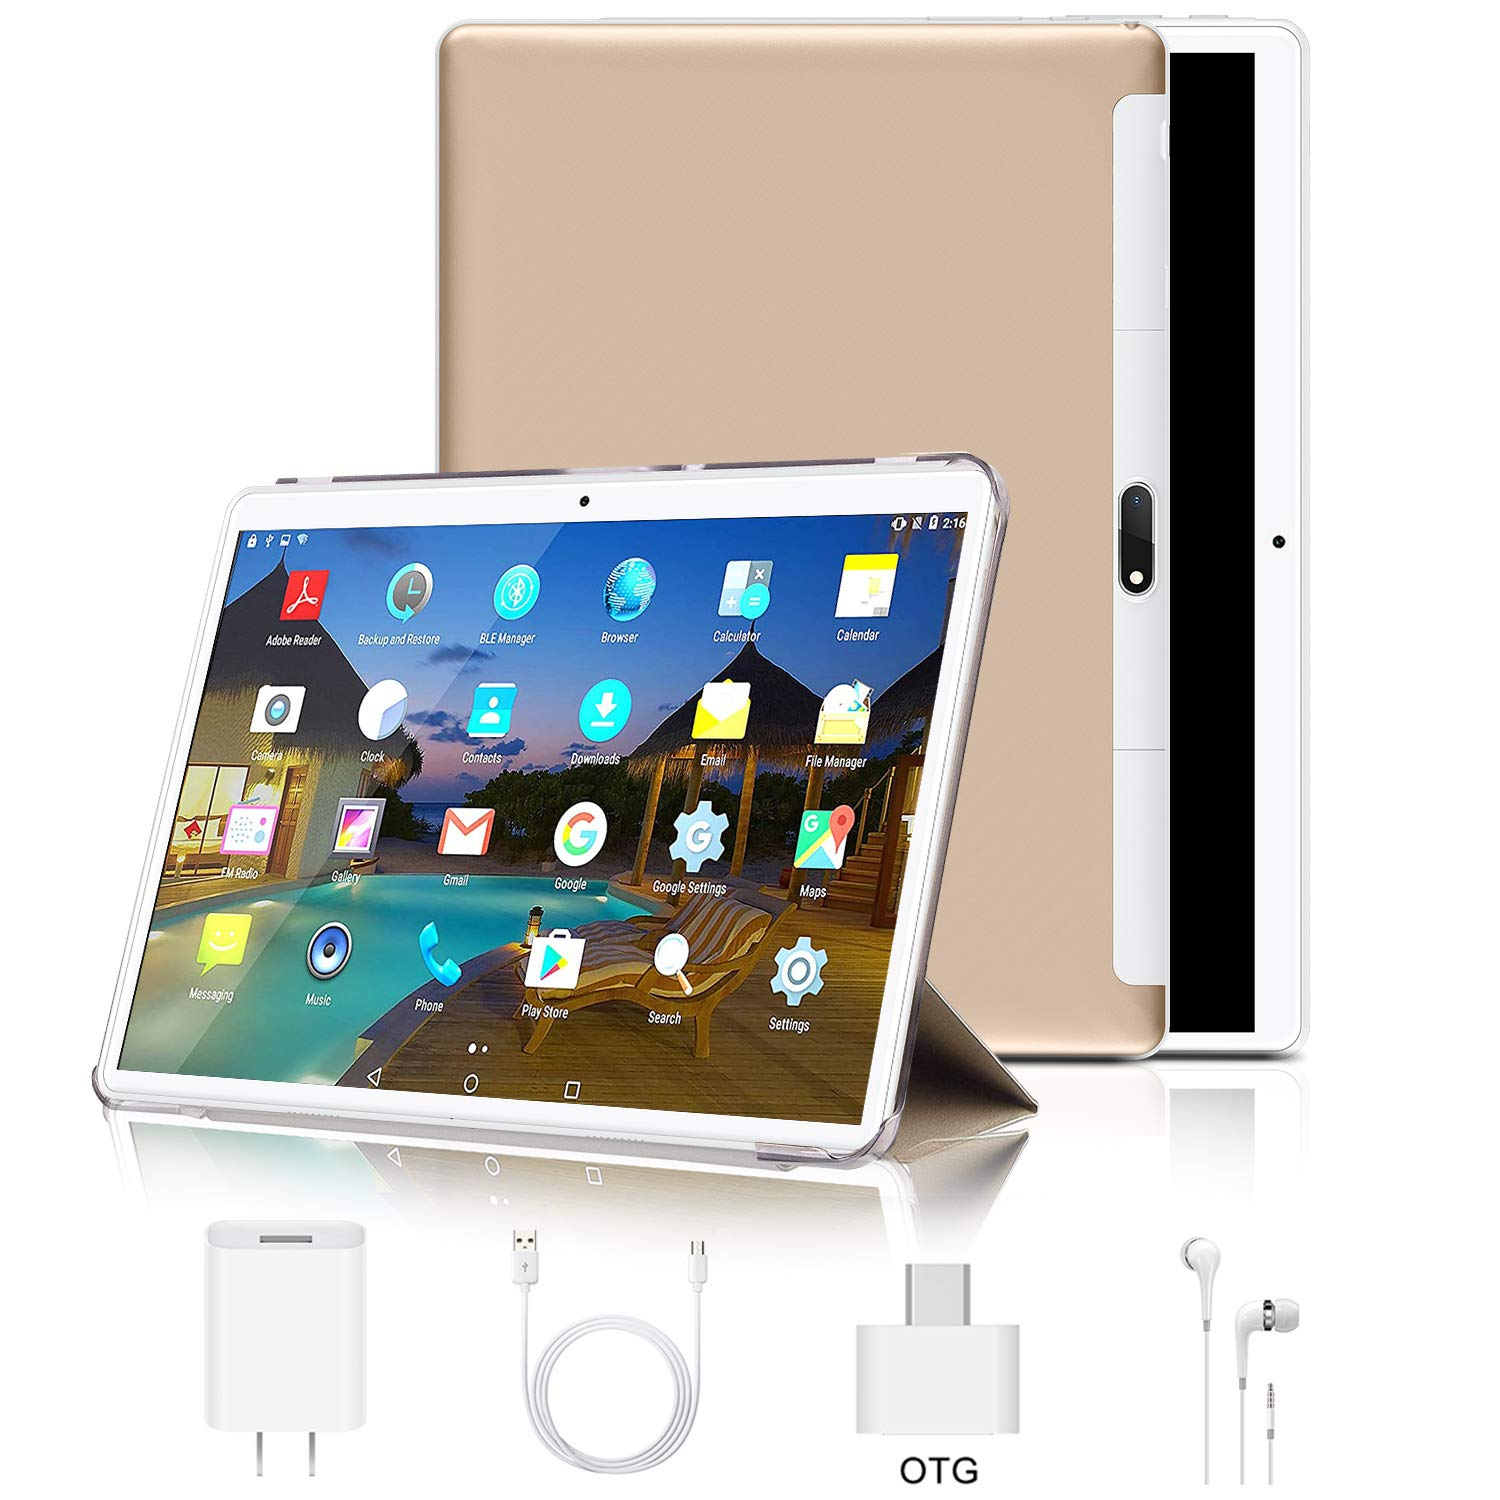 """Tablet 10 inch, Android 9.0 Pie Tablets PC 4GB RAM 64GB ROM, Quad Core Processor, IPS HD 10"""" Display, 8MP Dual Camera, Dual 4G SIM, 8000mAh Battery, WiFi, Google GMS Certified - Gold"""